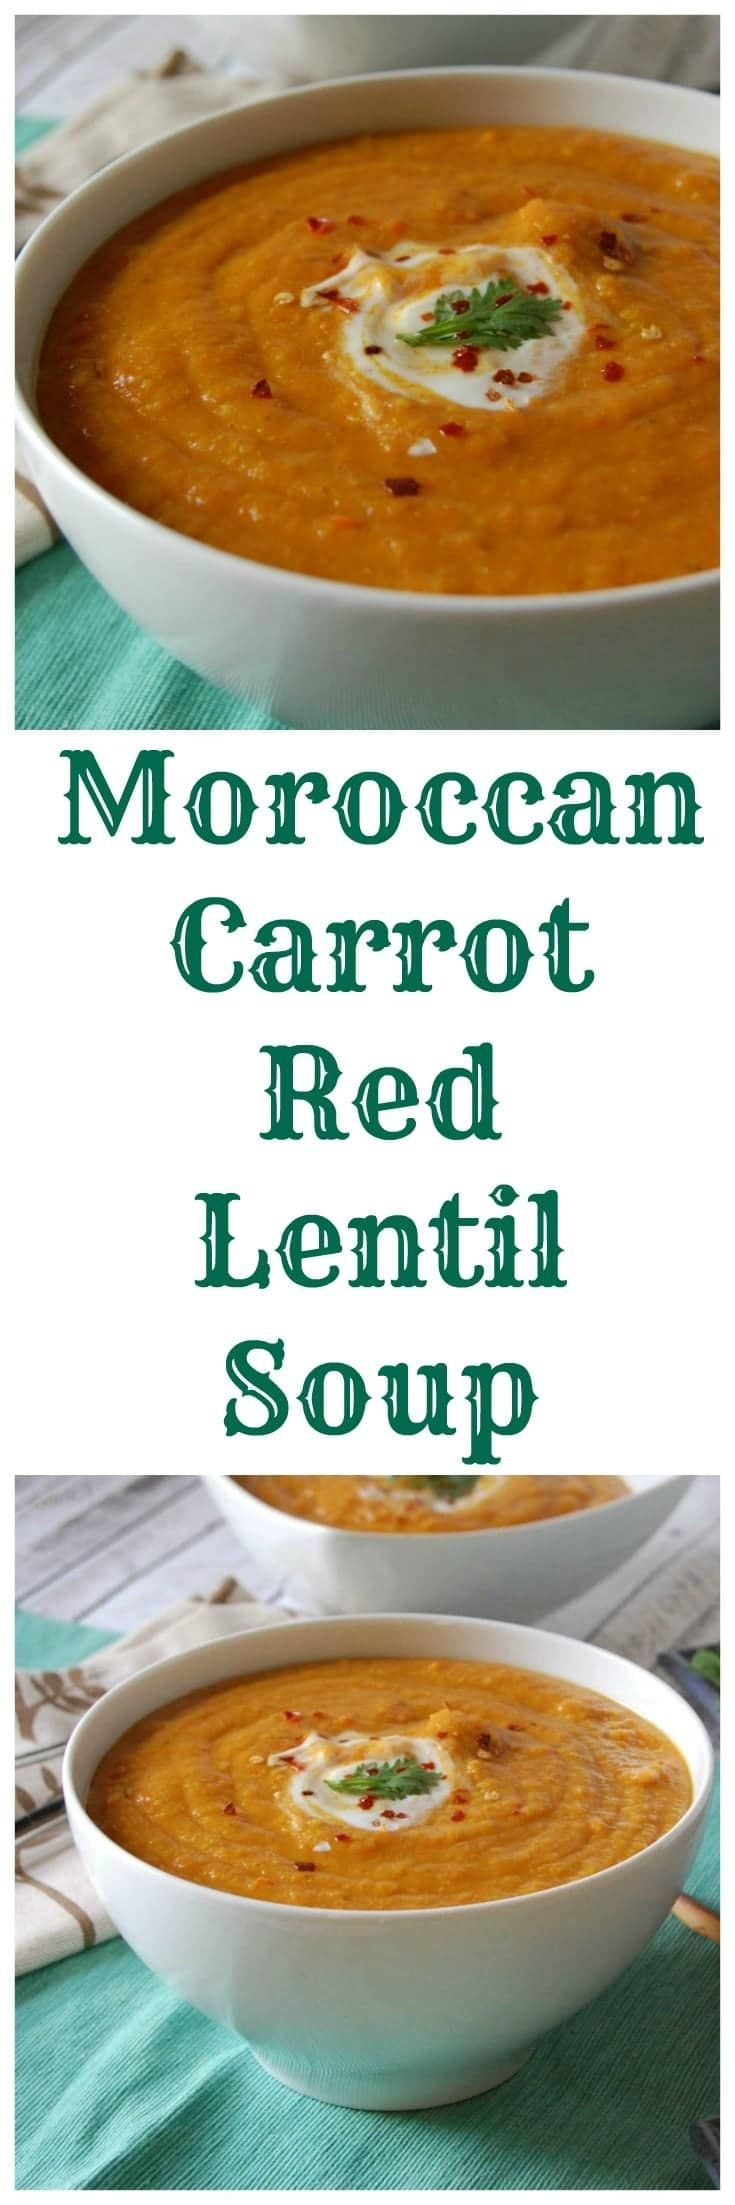 Moroccan Carrot Red Lentil Soup is full of the flavors of cumin, turmeric, coriander, paprika and cinnamon that complements the red lentils and carrots.